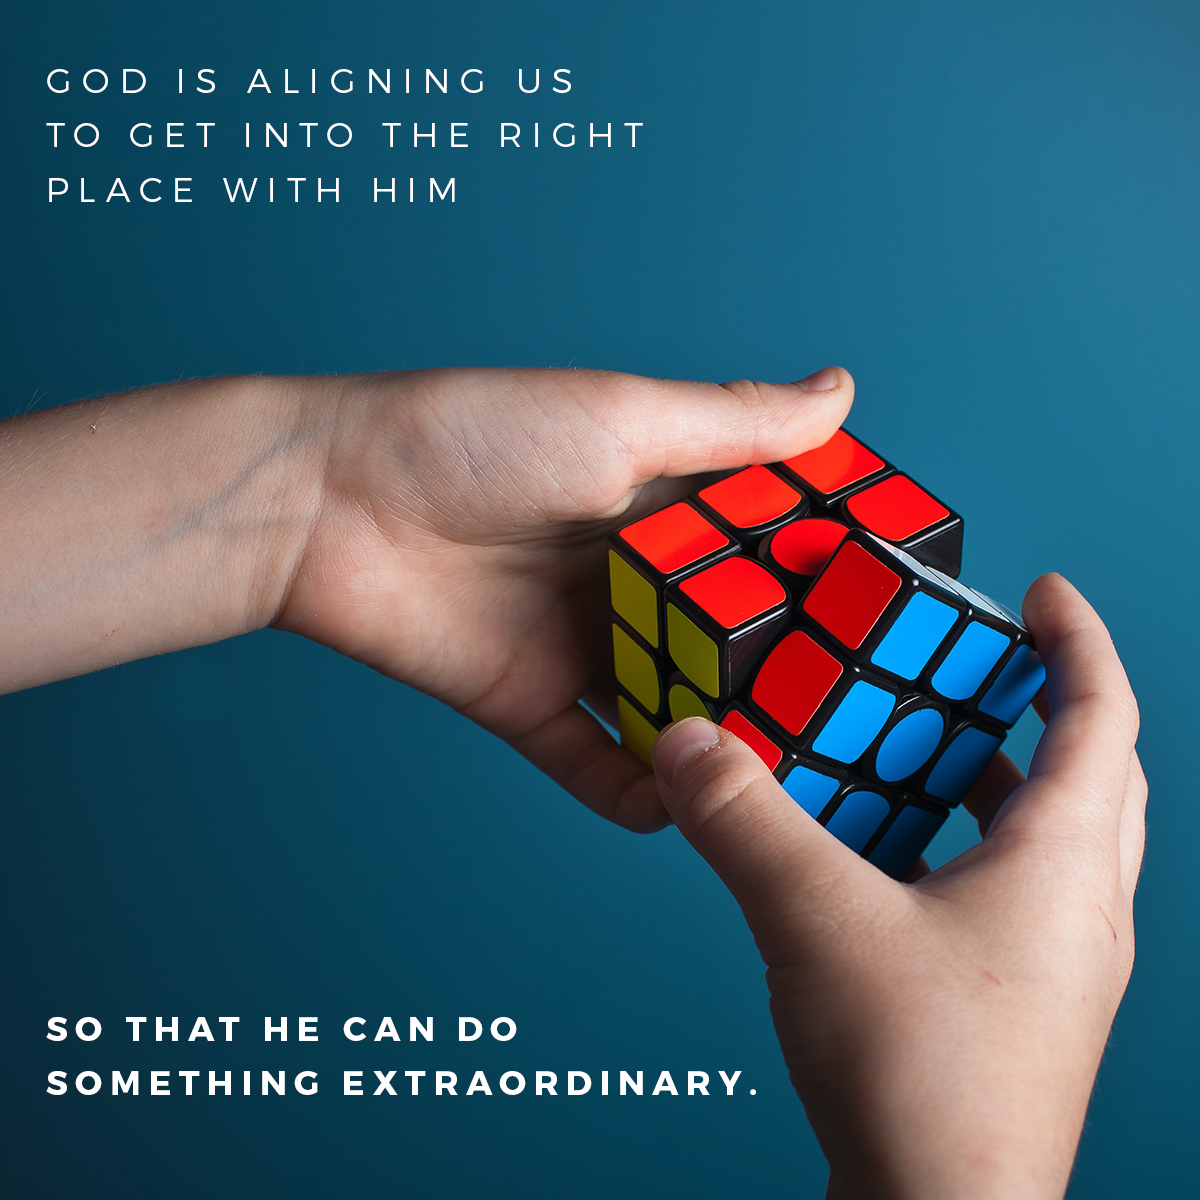 Do you believe #God has a bigger plan? It may seem like your life is in pieces – but He's got it under control. He's bringing it together to create something wonderful. #FaithFriday